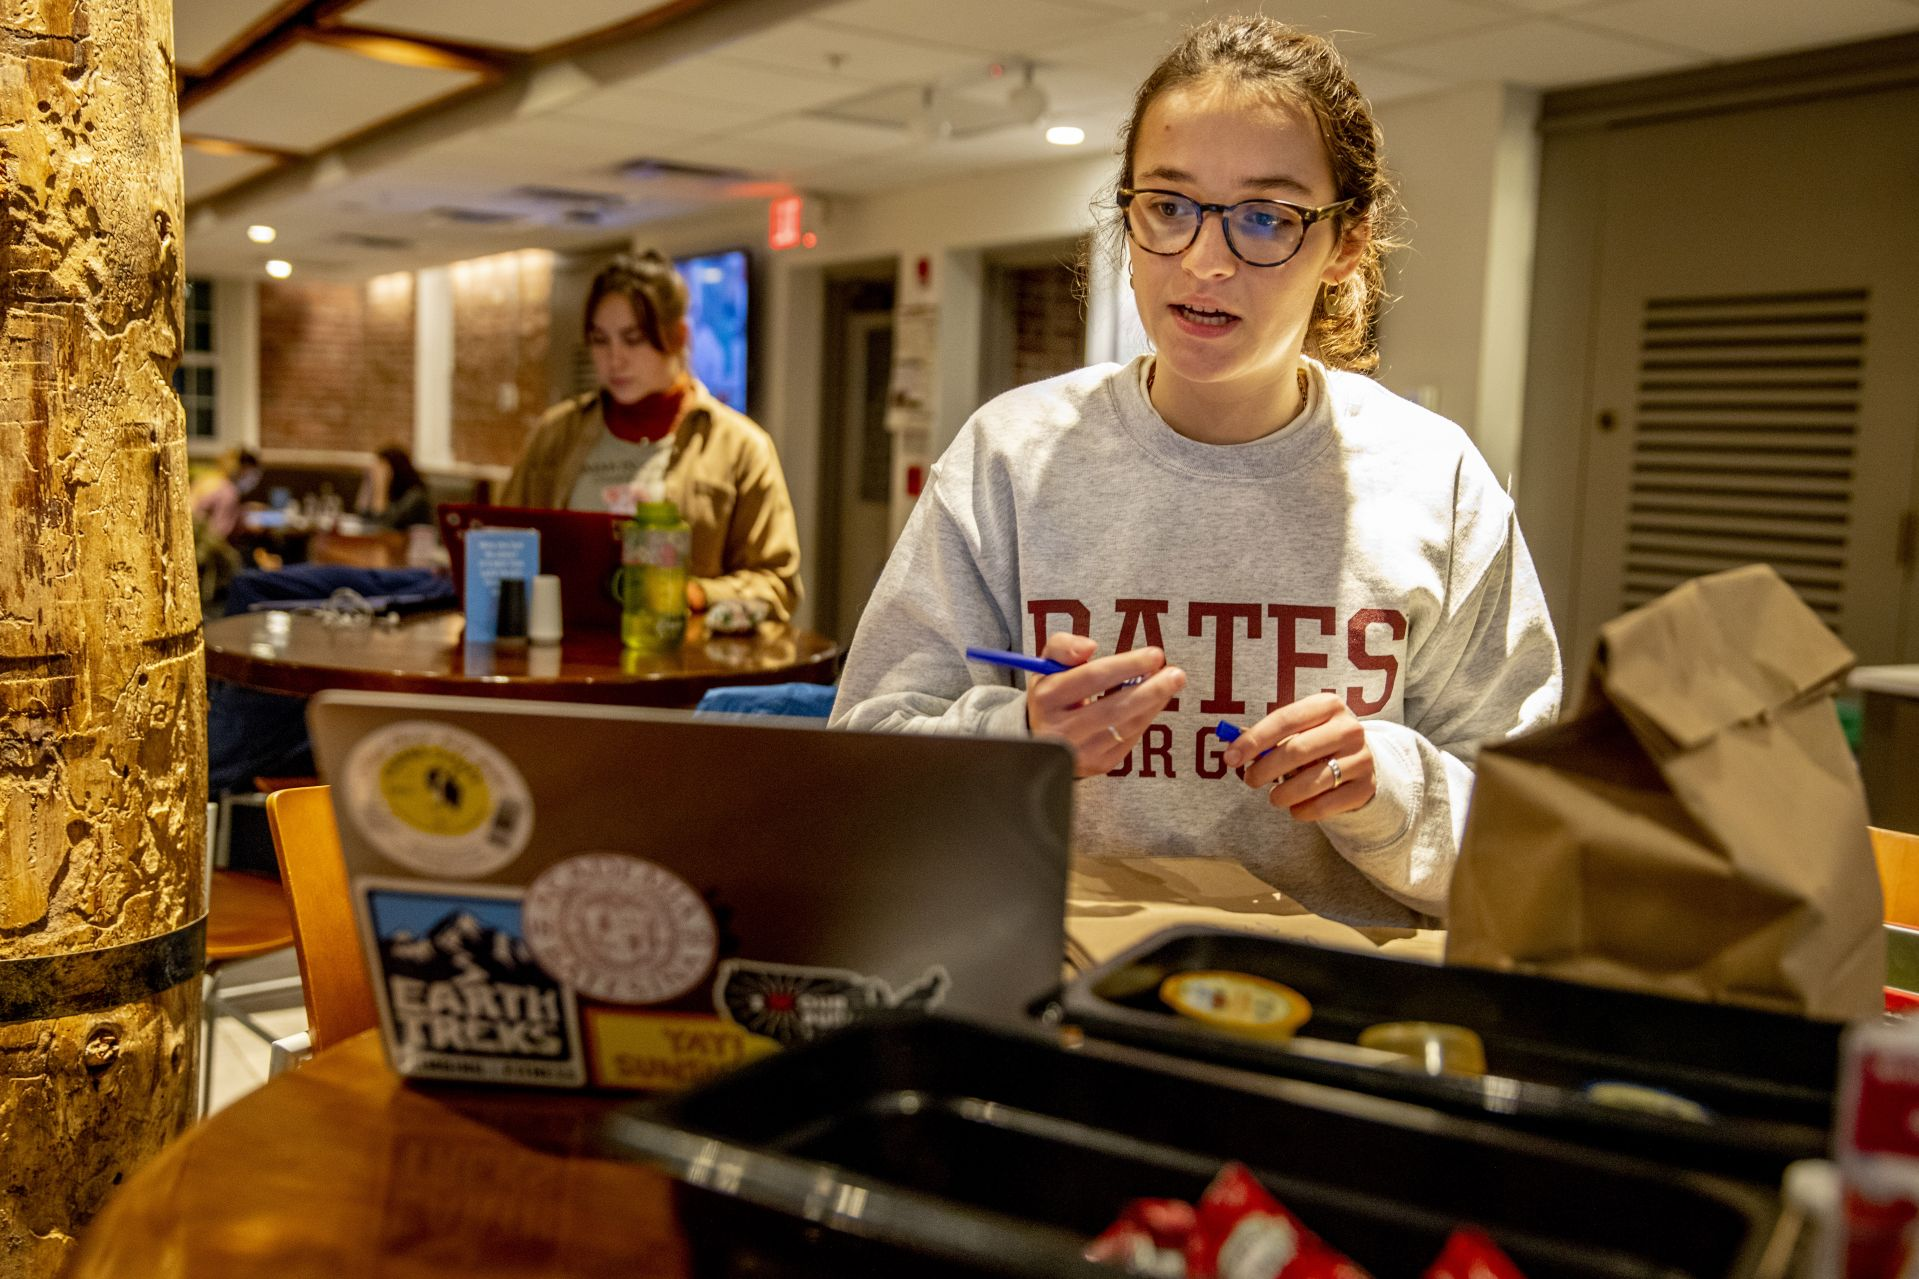 Bates Den Deliver Service in operation between 9-10 p.m. on Tuesday, Nov. 19, 2019. Serving as the CEO this year is Grace Warder '20 of NYC, and taking the orders and making the deliveries tonight are Olivia Kranefuss '22 of Madison, N.J.,in the corduroy shirt and Elly Beckerman '22 of Washington, D.C., in glasses. All three women are environmental studies majors. Roman Hudgins of Dining Services is shown handing over an order to Kranefuss who bikes to her fist delivery at Parker, passing through the Library Quad, both on the Quad and the Library Well. Beckerman makes a delivery to Frye Street and bikes across the Historic Quad to get there. And Harley Rinehart, in gray shirt and garnet hat takes the order from Kranefuss after she waits in line to place it.